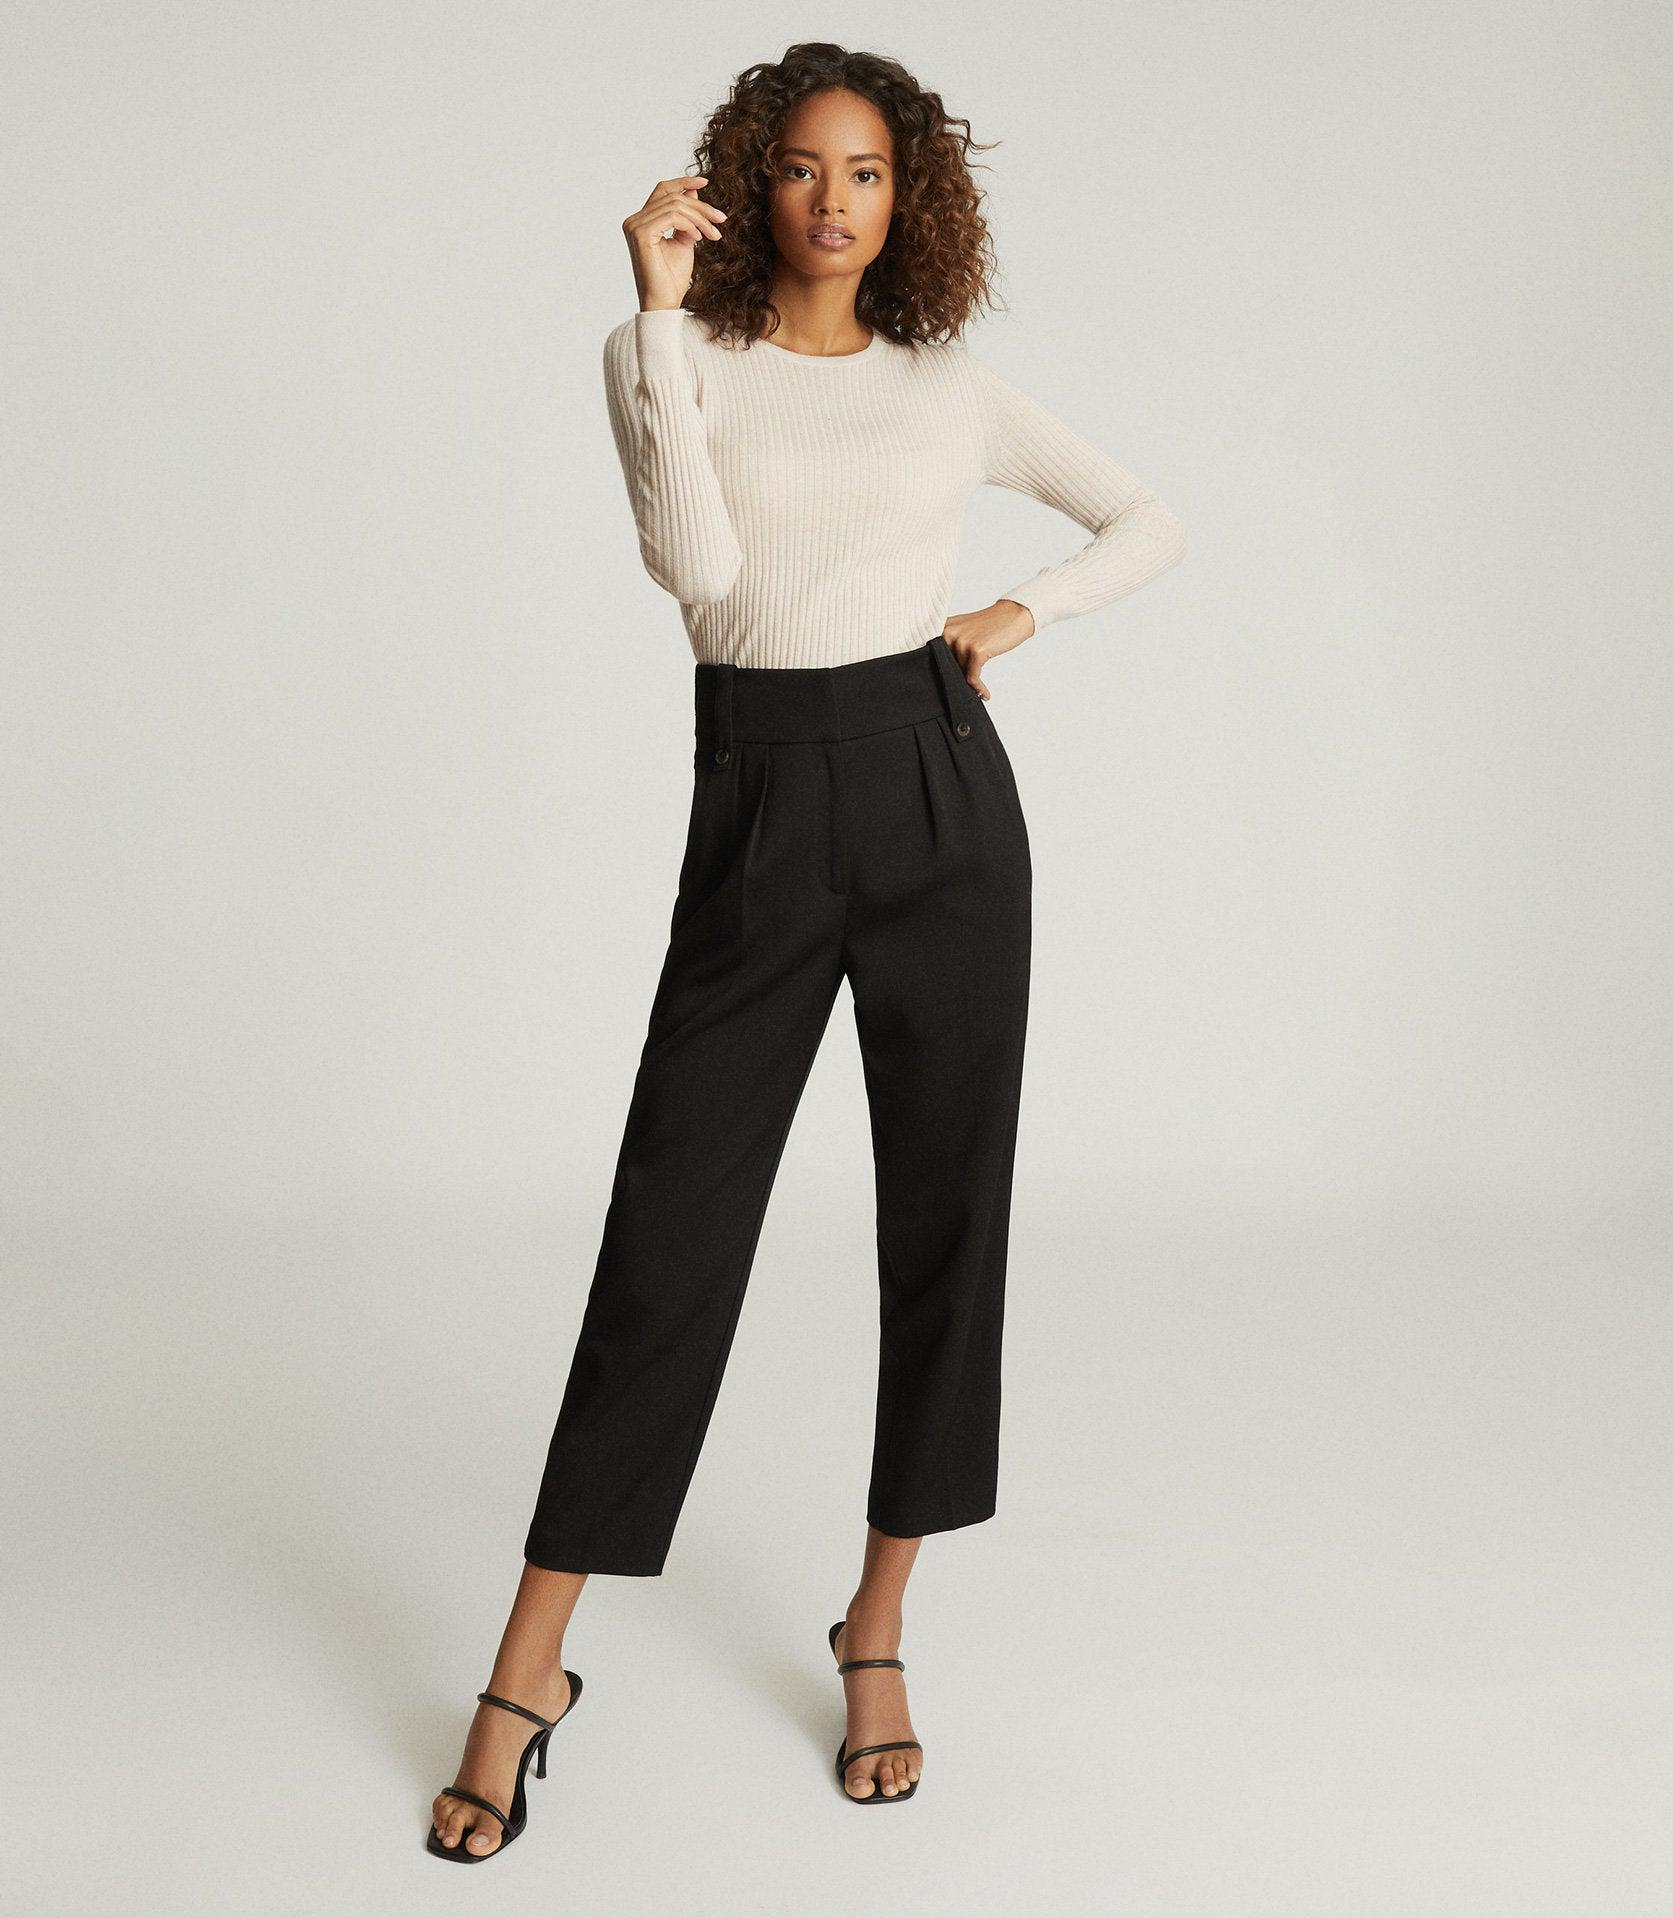 LENNOX TROUSER - HIGH WAISTED CROPPED TROUSERS